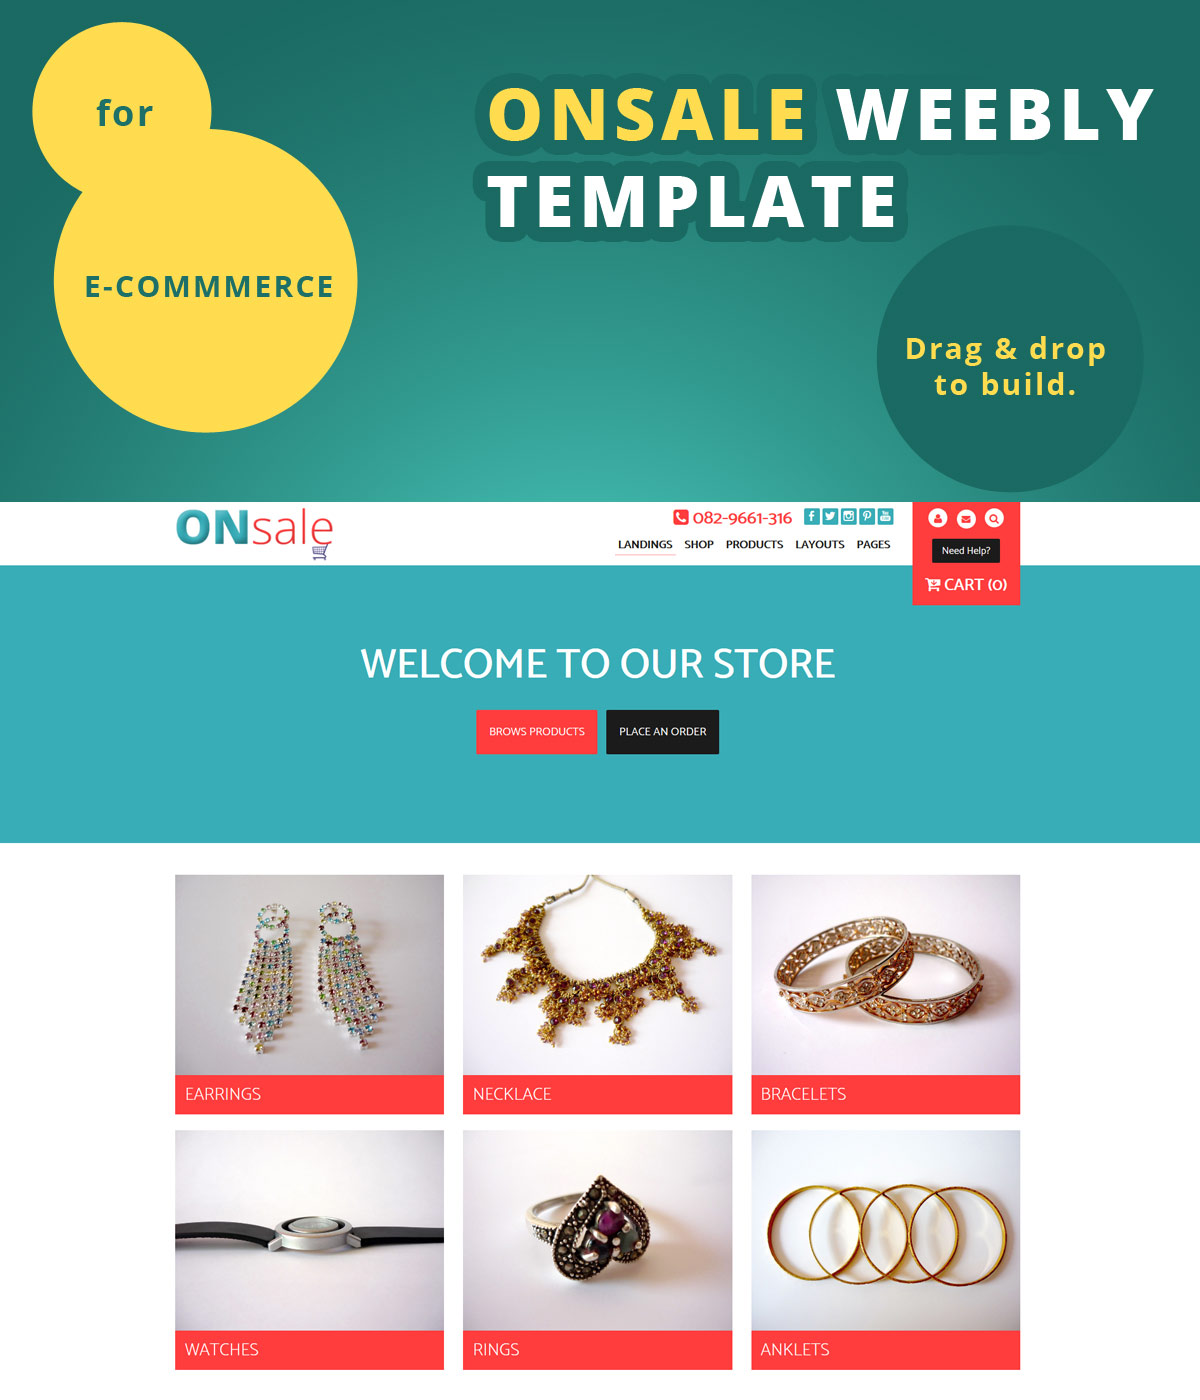 Onsale Weebly Ecommerce And Weebly Store Template Roomy Themes - E news template